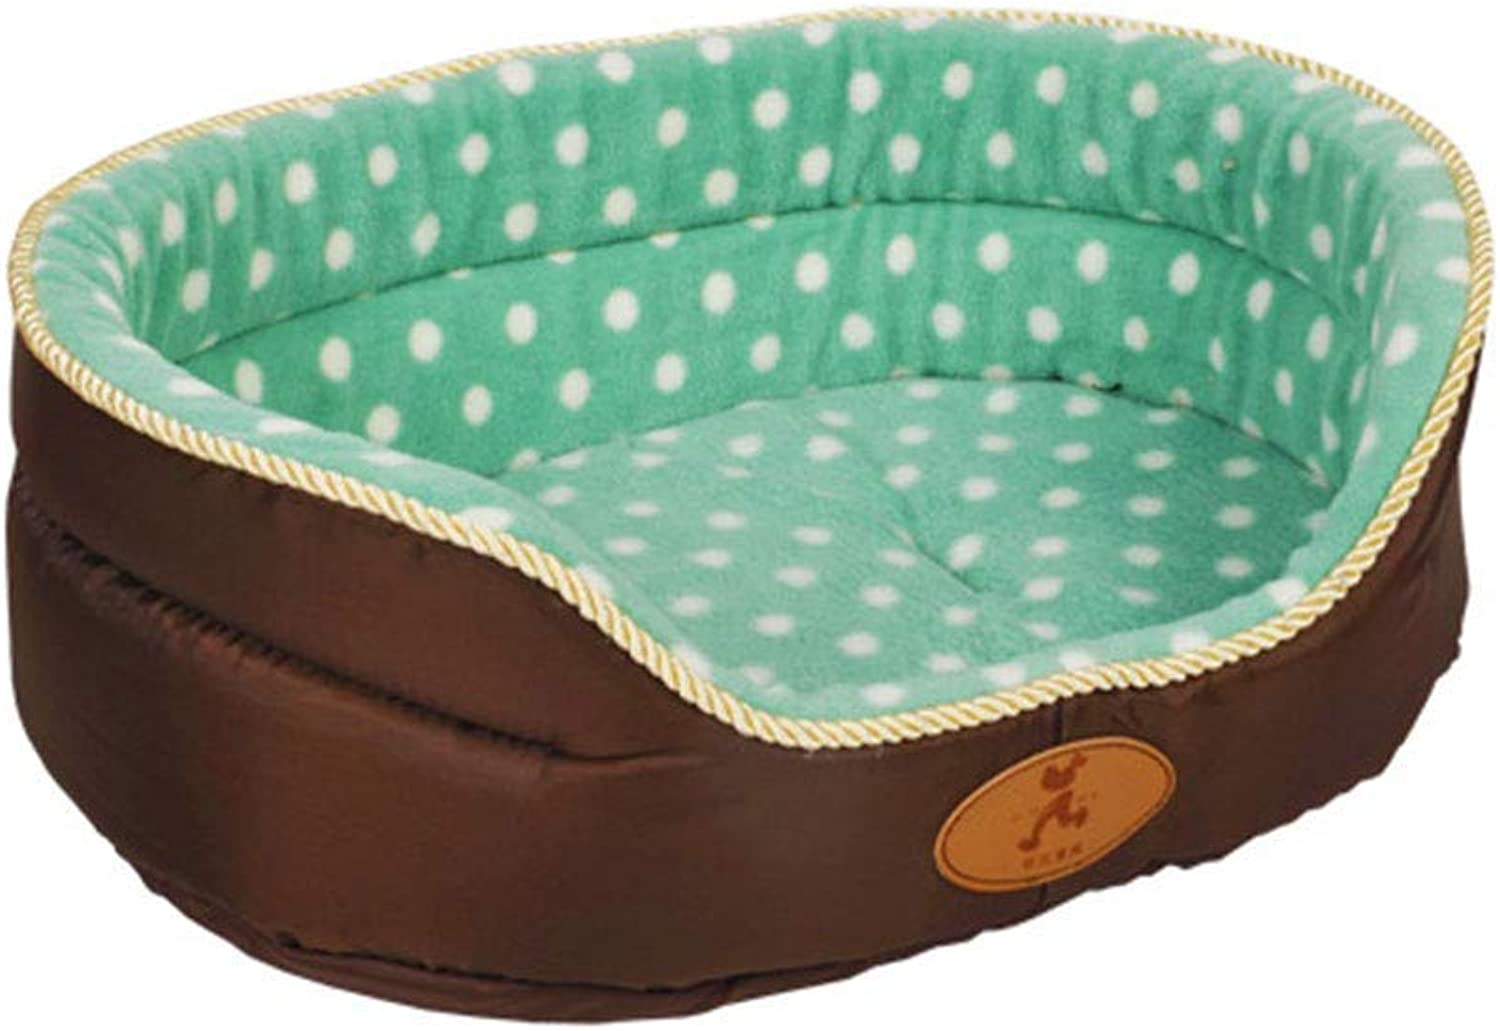 Fuxitoggo Pet Bed Plush Washable Deluxe Soft Comfy Cat Dog Bed Waterloo Removable Cushion (color   No cushionB, Size   80  70  22cm) (color   No Cushiond, Size   45  37  17cm)